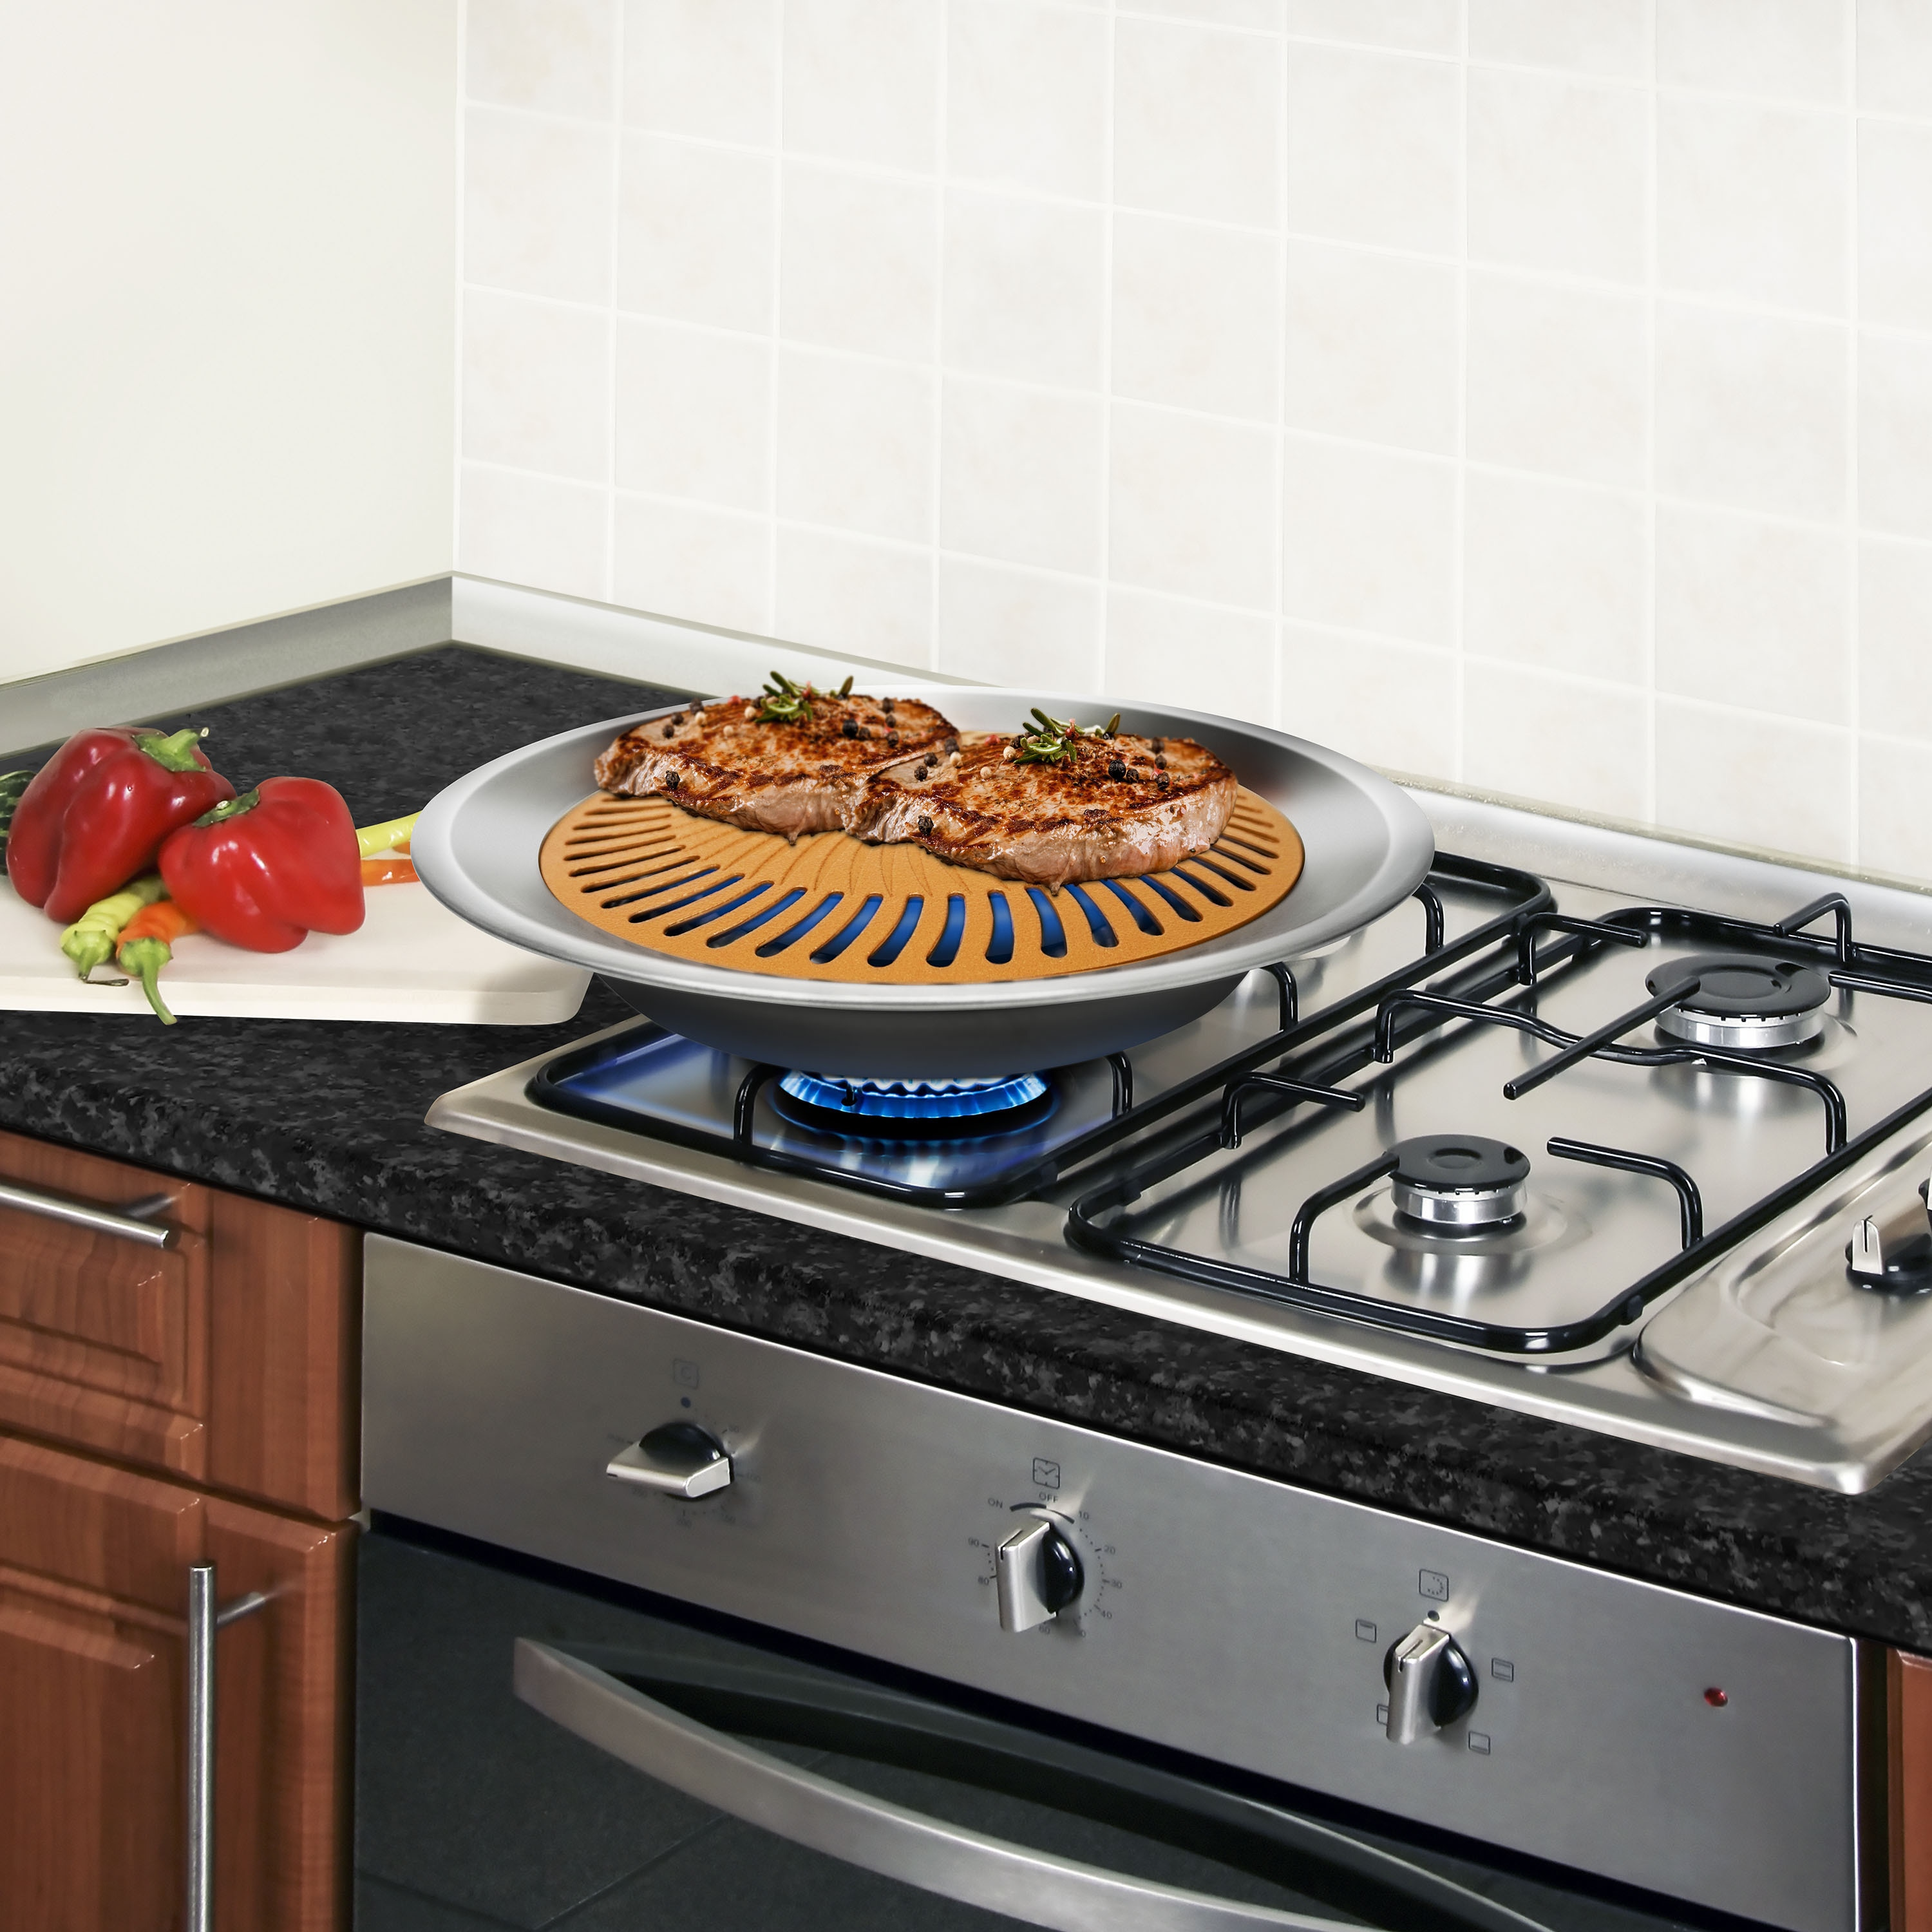 gas cooktop with grill. Gotham Steel Ti Cerama Nonstick Stove Top Indoor Grill - Free Shipping On Orders Over $45 Overstock 22297034 Gas Cooktop With